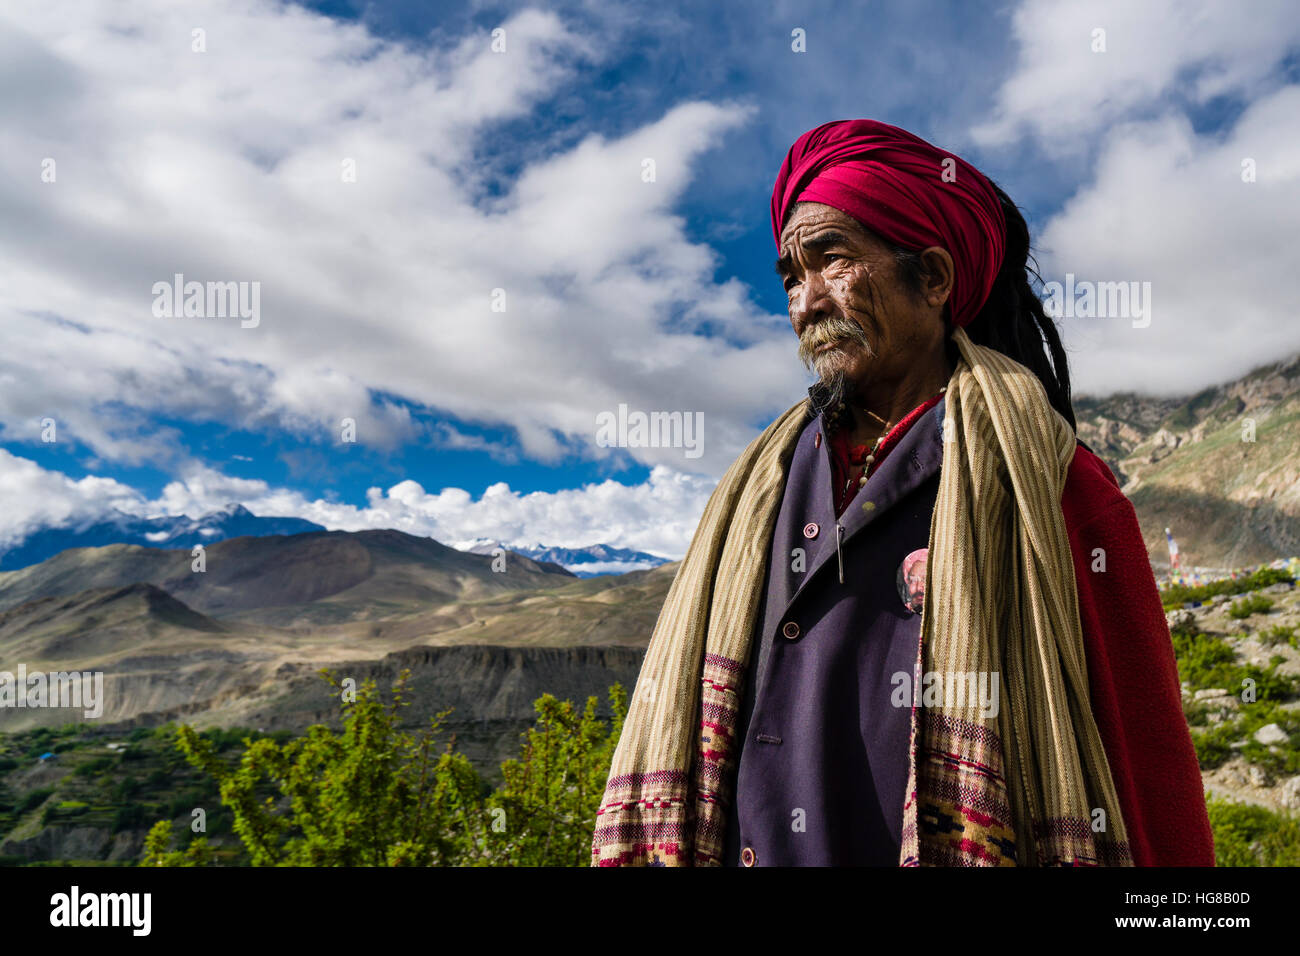 Portrait of Sadhu, holy man, looking into the himalayan mountains, Muktinath, Mustang District, Nepal - Stock Image